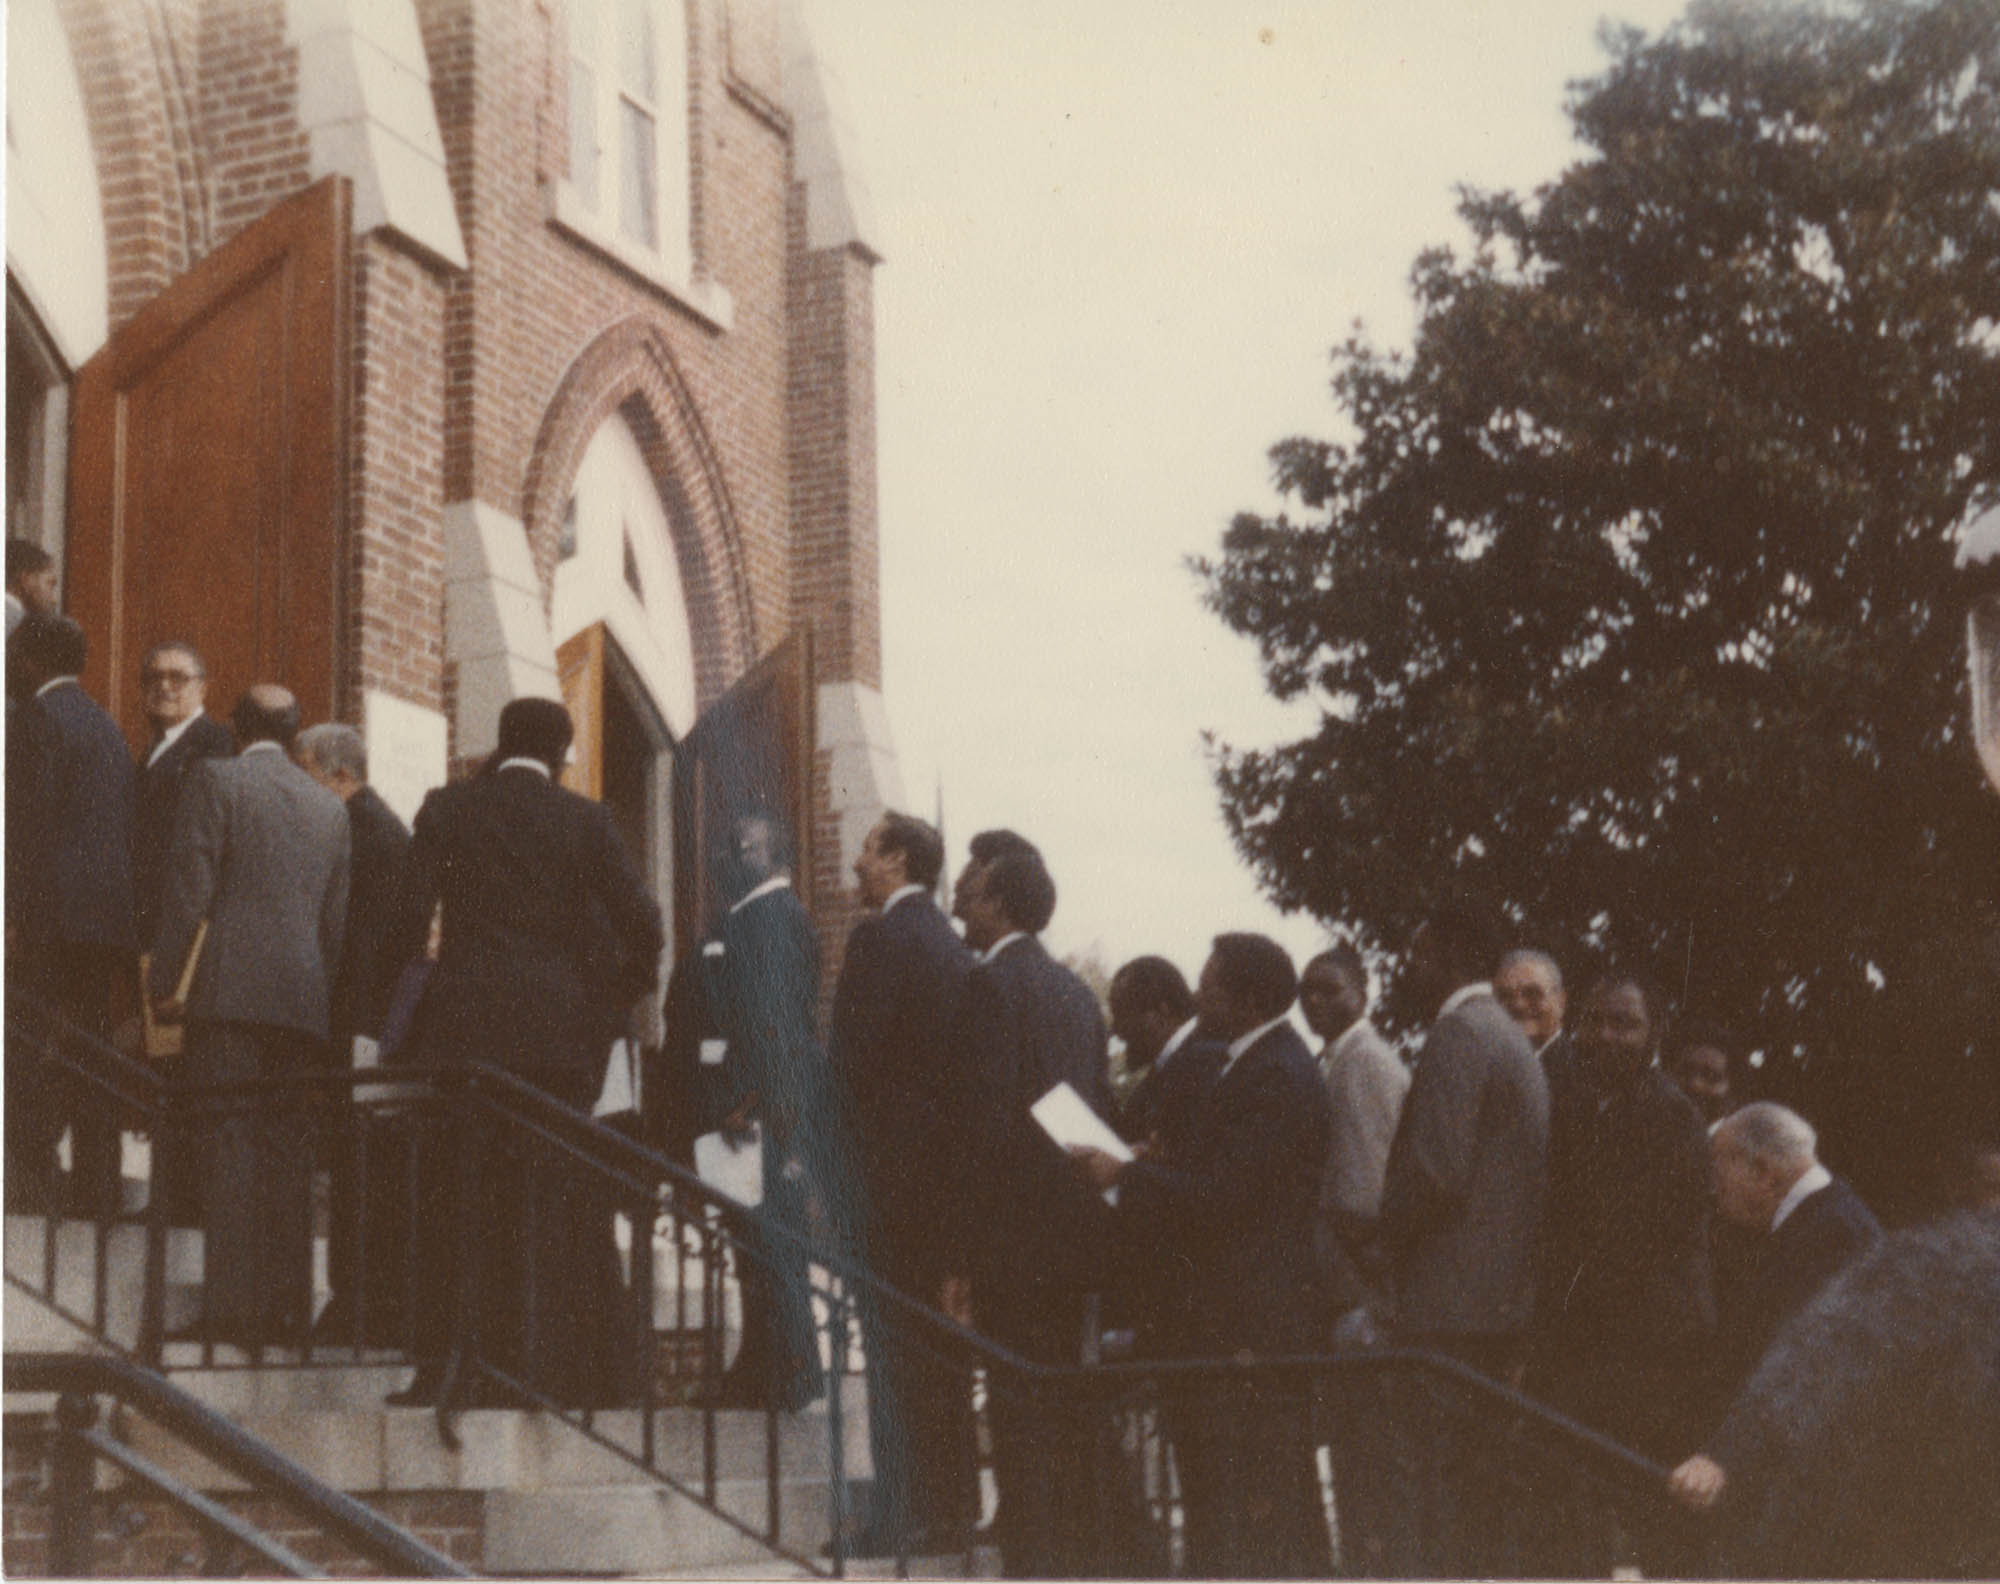 Photograph of a Group of People Walking into a Church